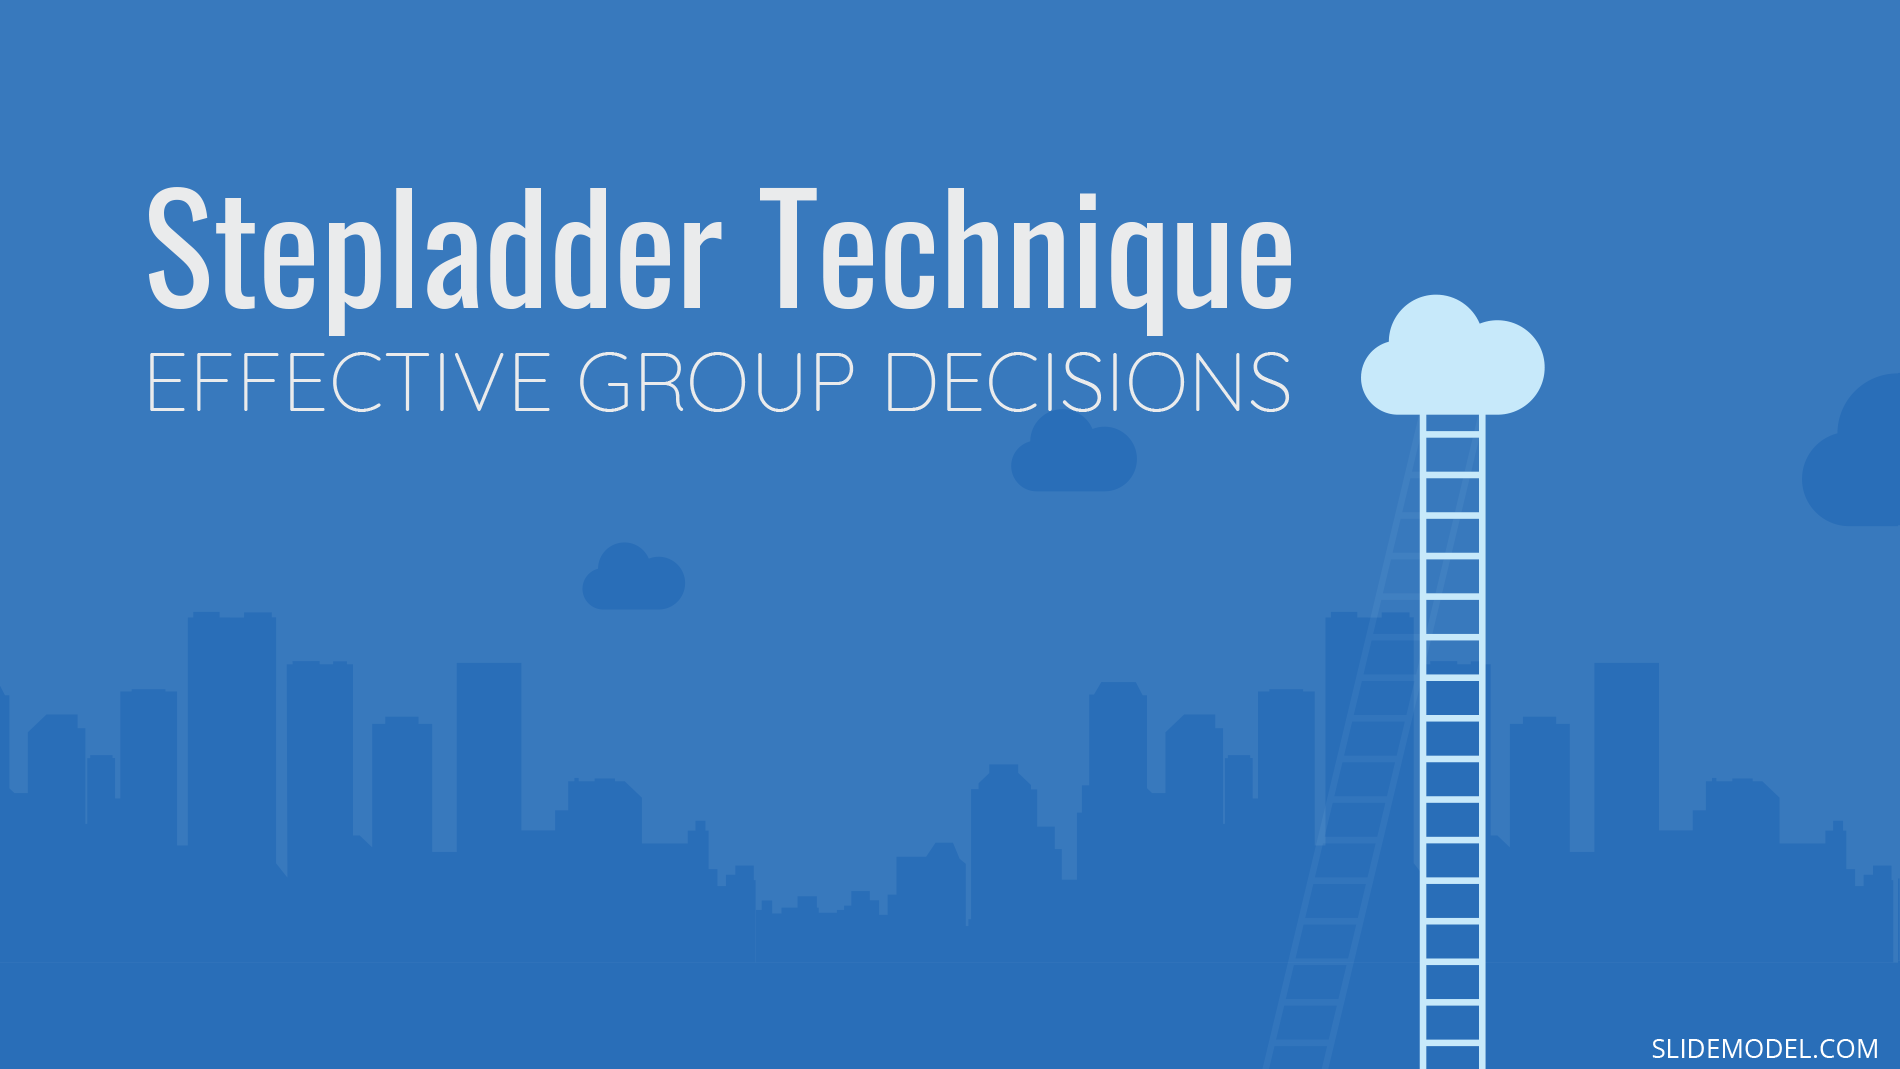 Making Effective Group Decisions with the Stepladder Technique PPT Template